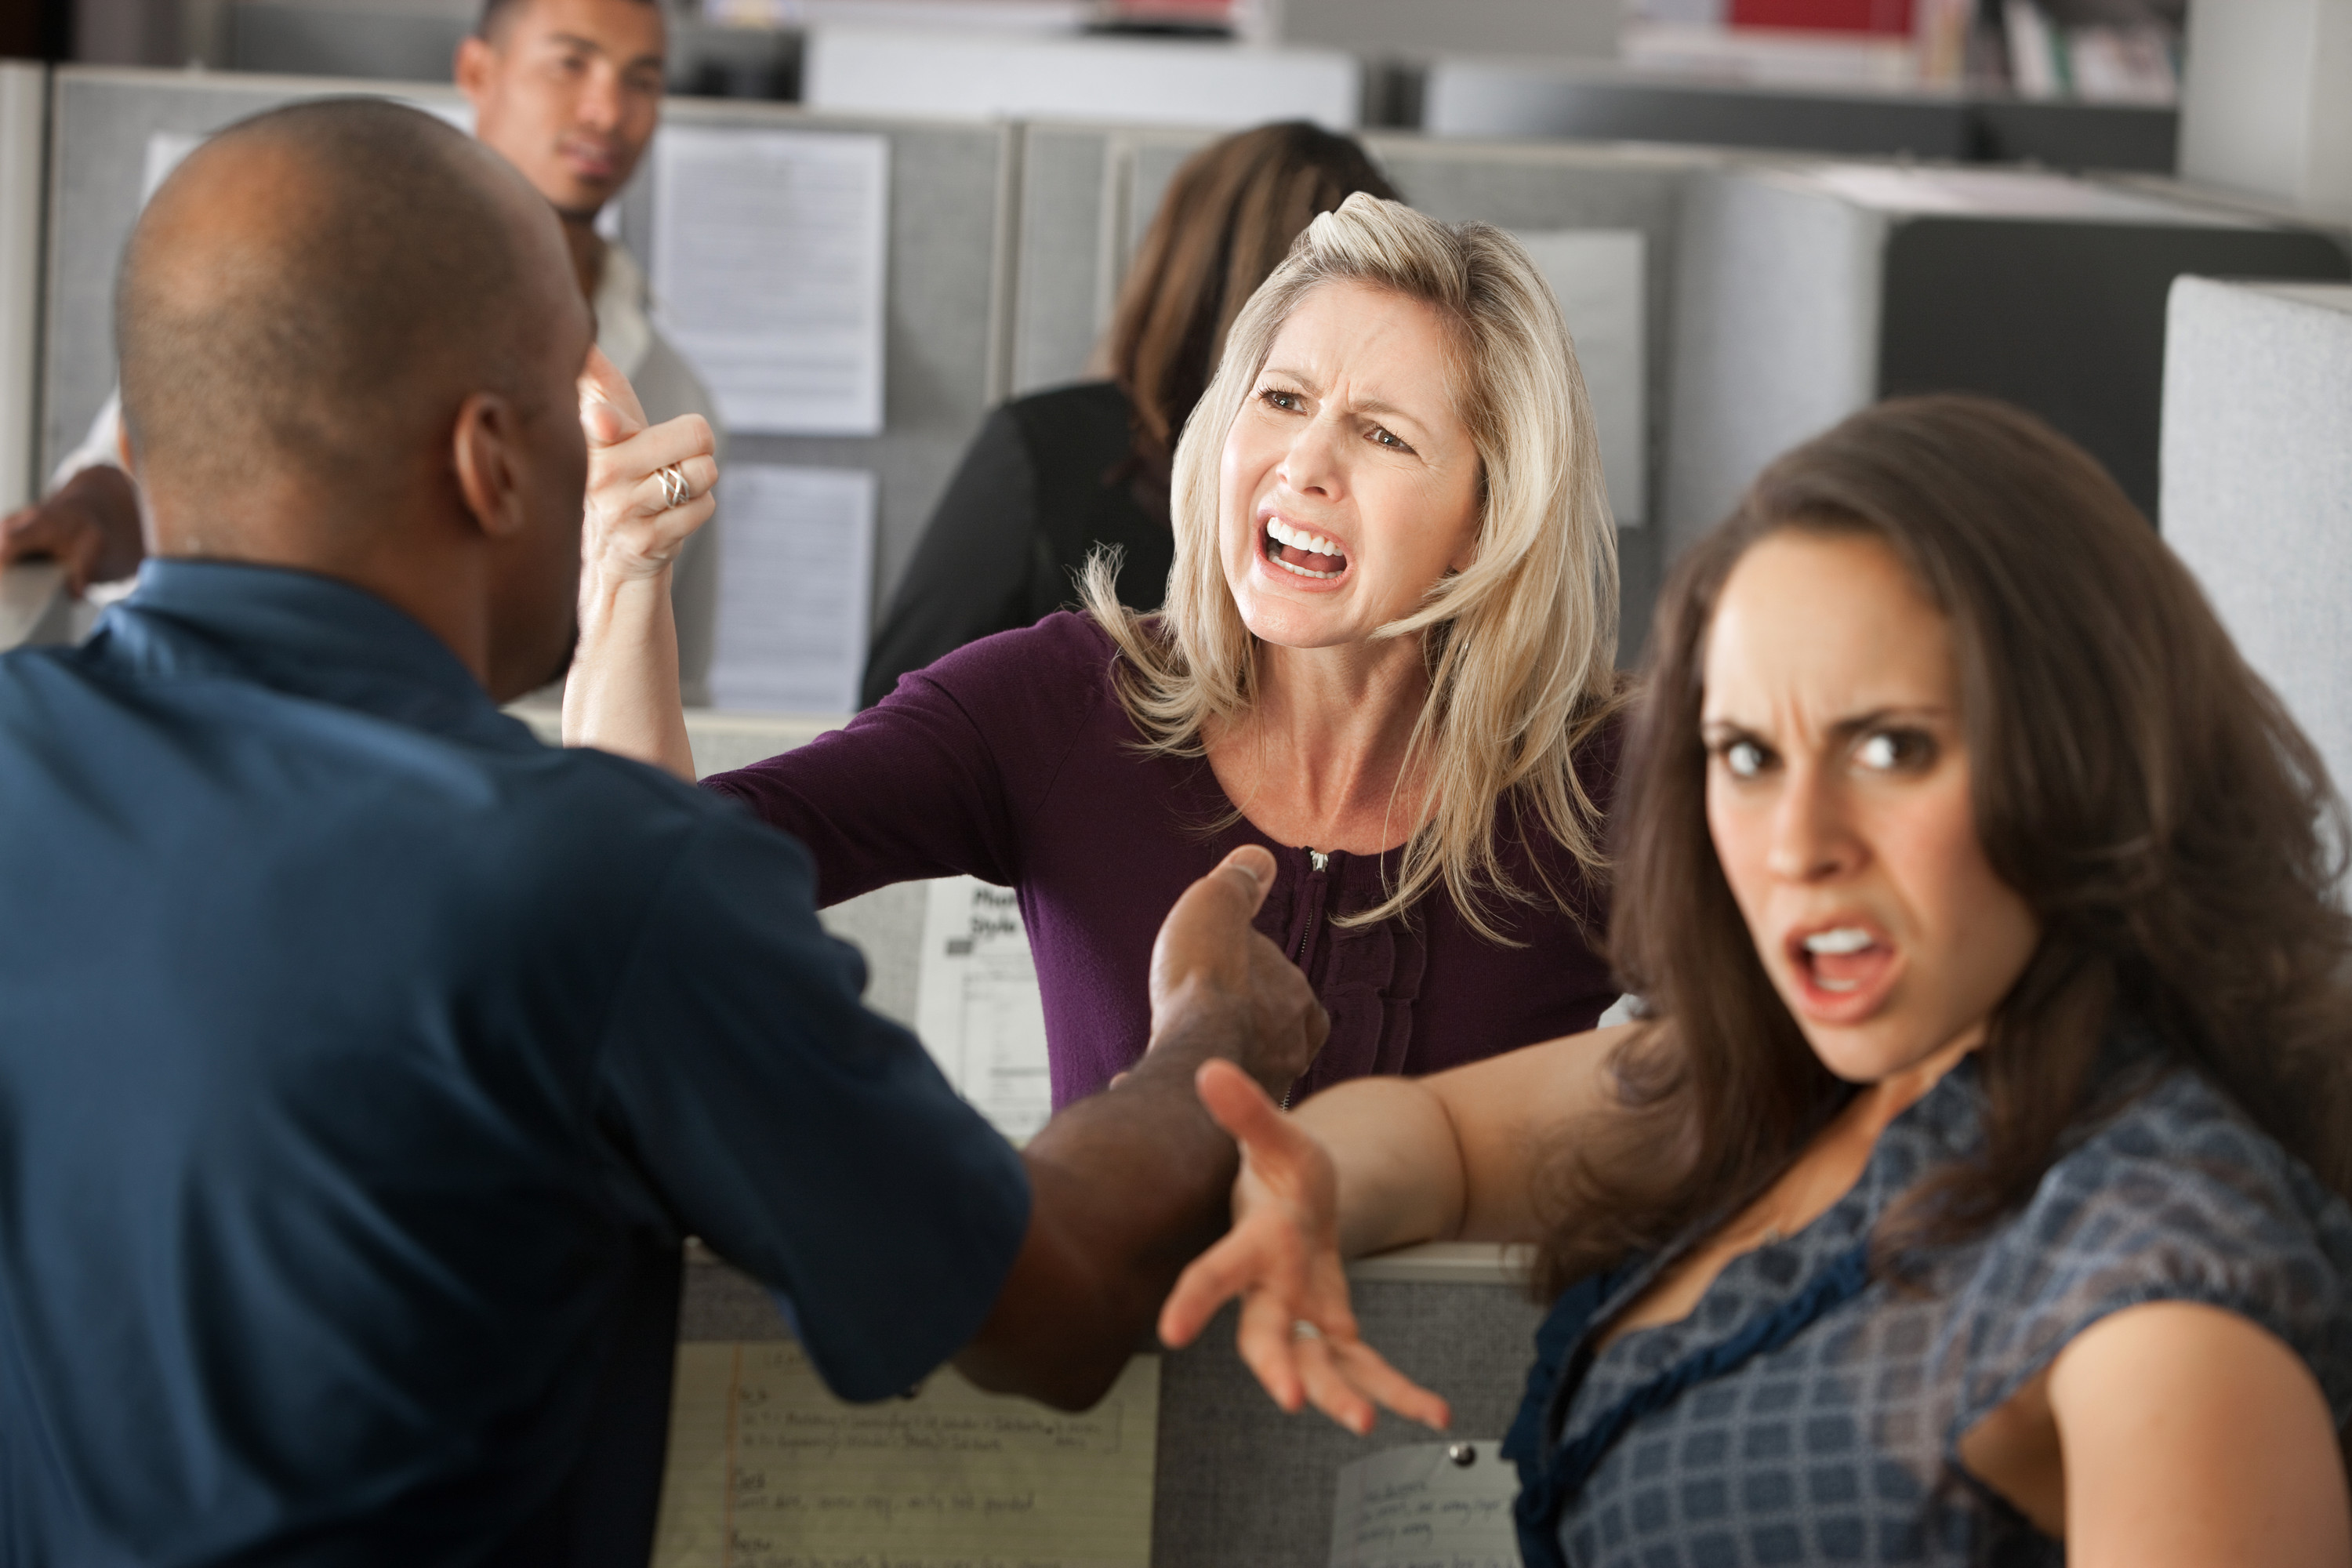 Workplace - AVOID THE OFFICE DRAMA